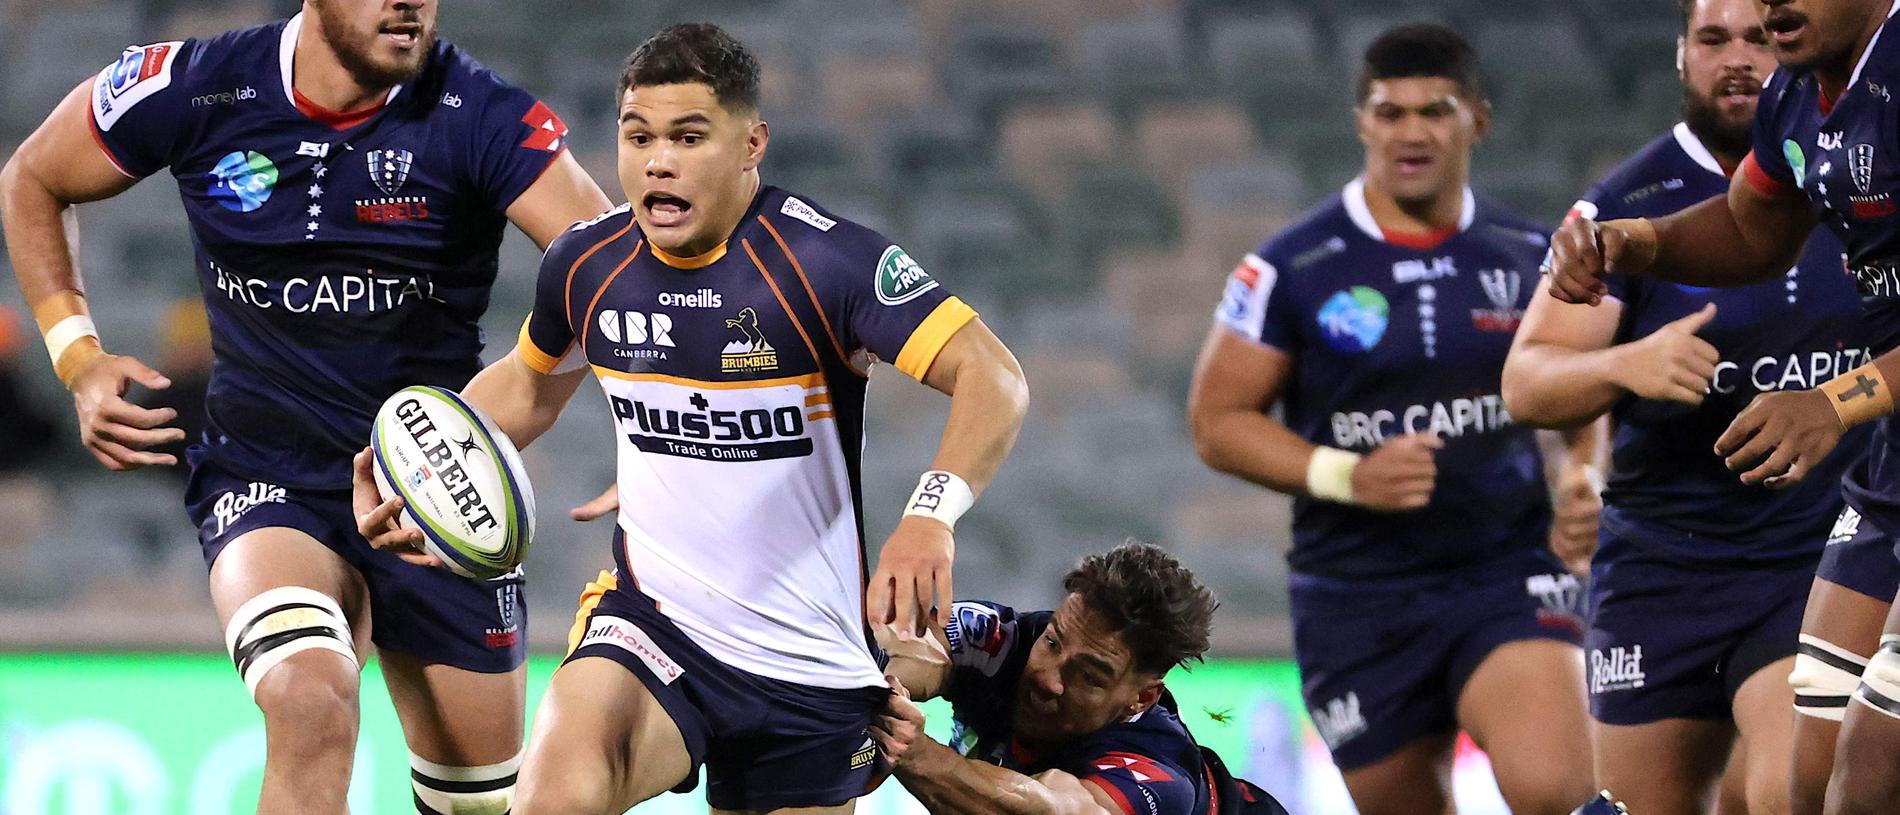 Noah Lolesio of the Brumbies runs with the ball during the Super Rugby match between the ACT Brumbies and Melbourne Rebels in Canberra on July 4, 2020. (Photo by DAVID GRAY / AFP) / IMAGE RESTRICTED TO EDITORIAL USE - STRICTLY NO COMMERCIAL USE